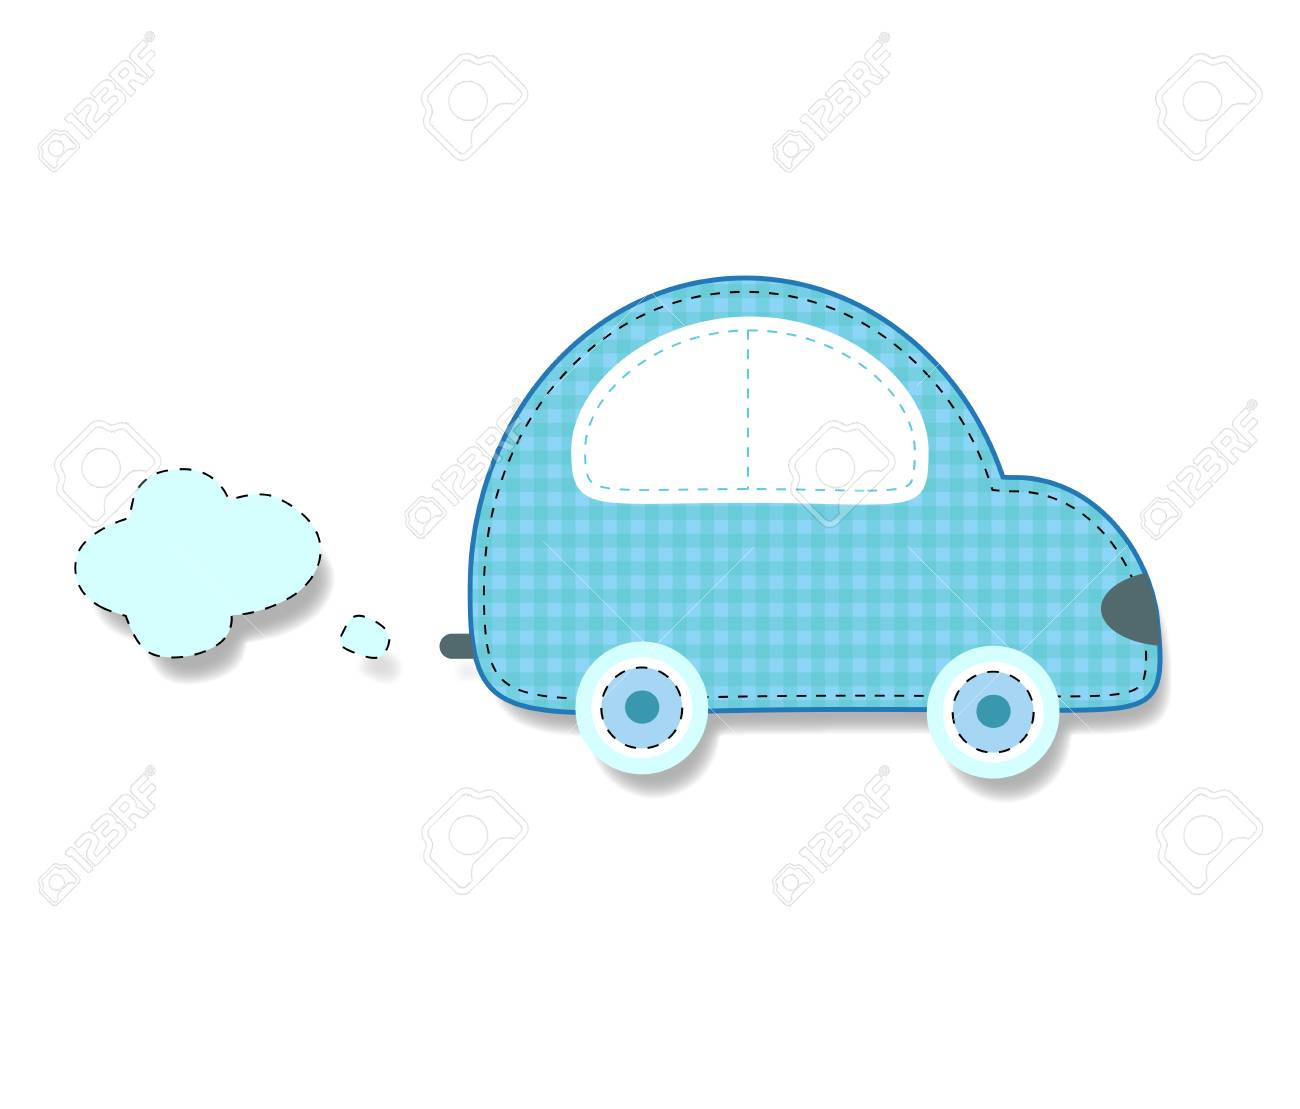 Cute Baby Boy Vector Clip Art Element For Scrapbooking Or Baby Royalty Free Cliparts Vectors And Stock Illustration Image 104458052